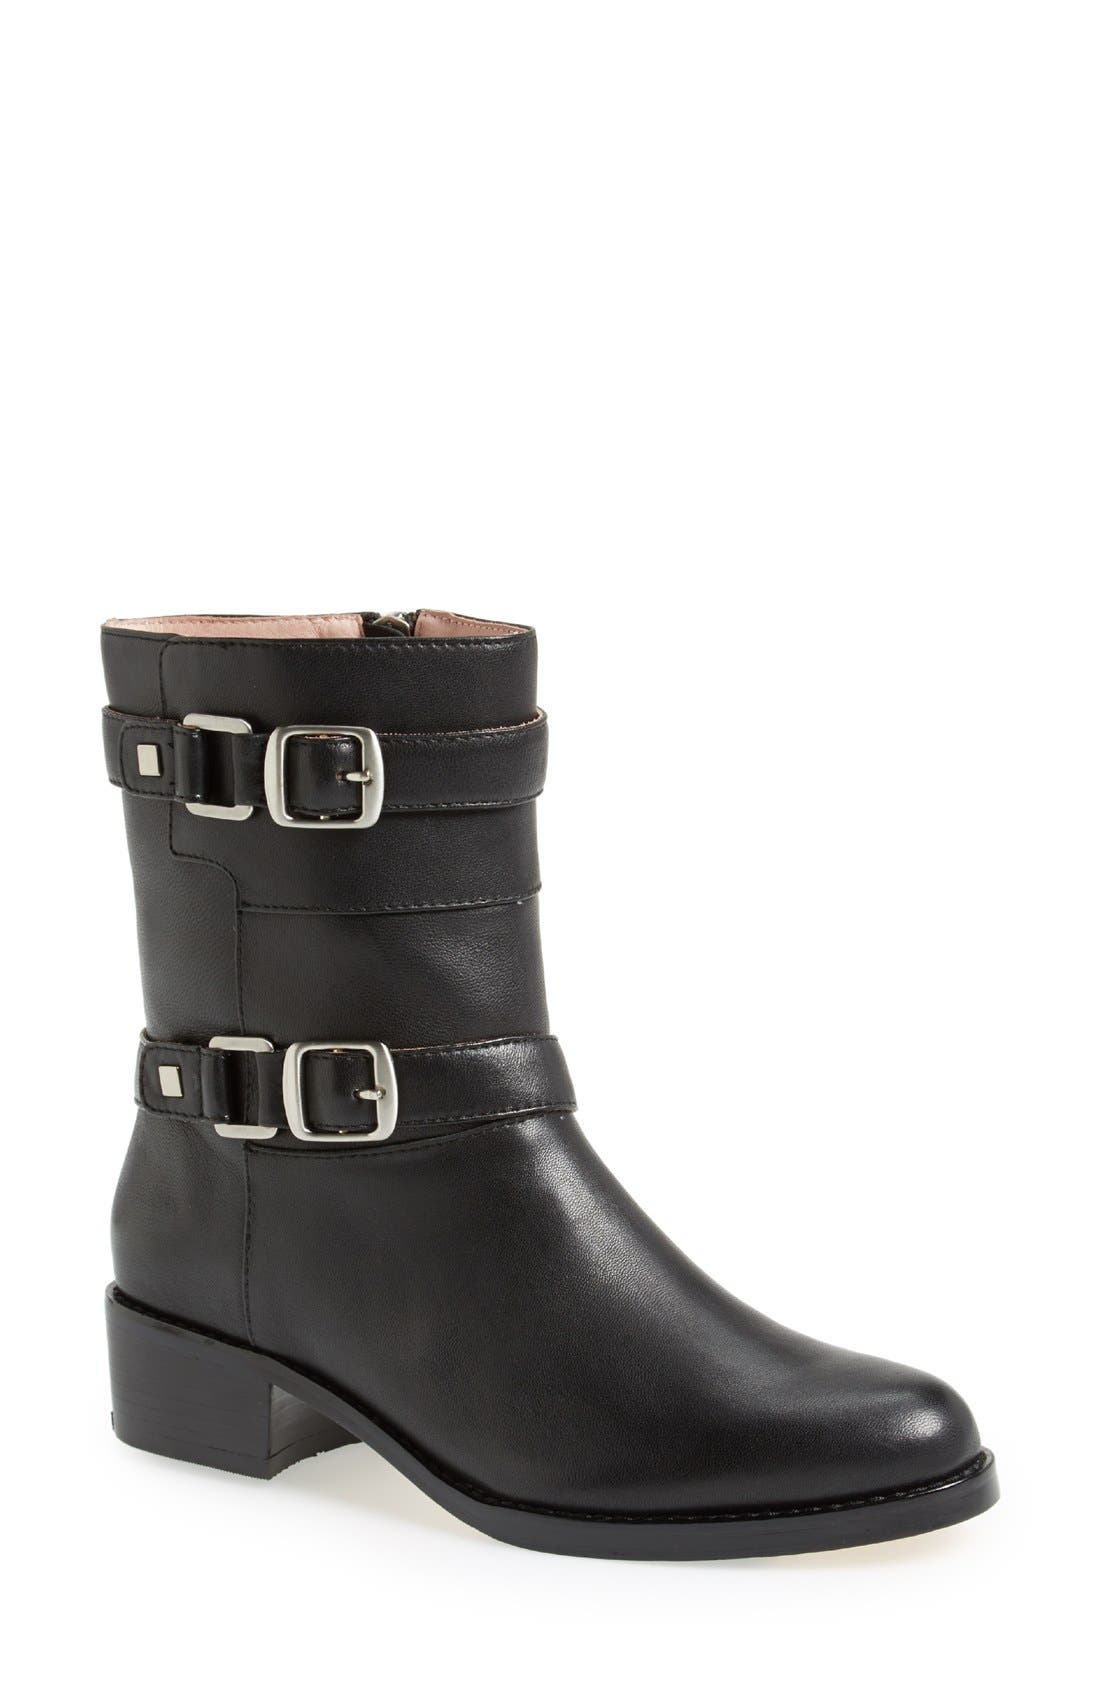 Main Image - Taryn Rose 'Sammie' Leather Moto Boot (Women)